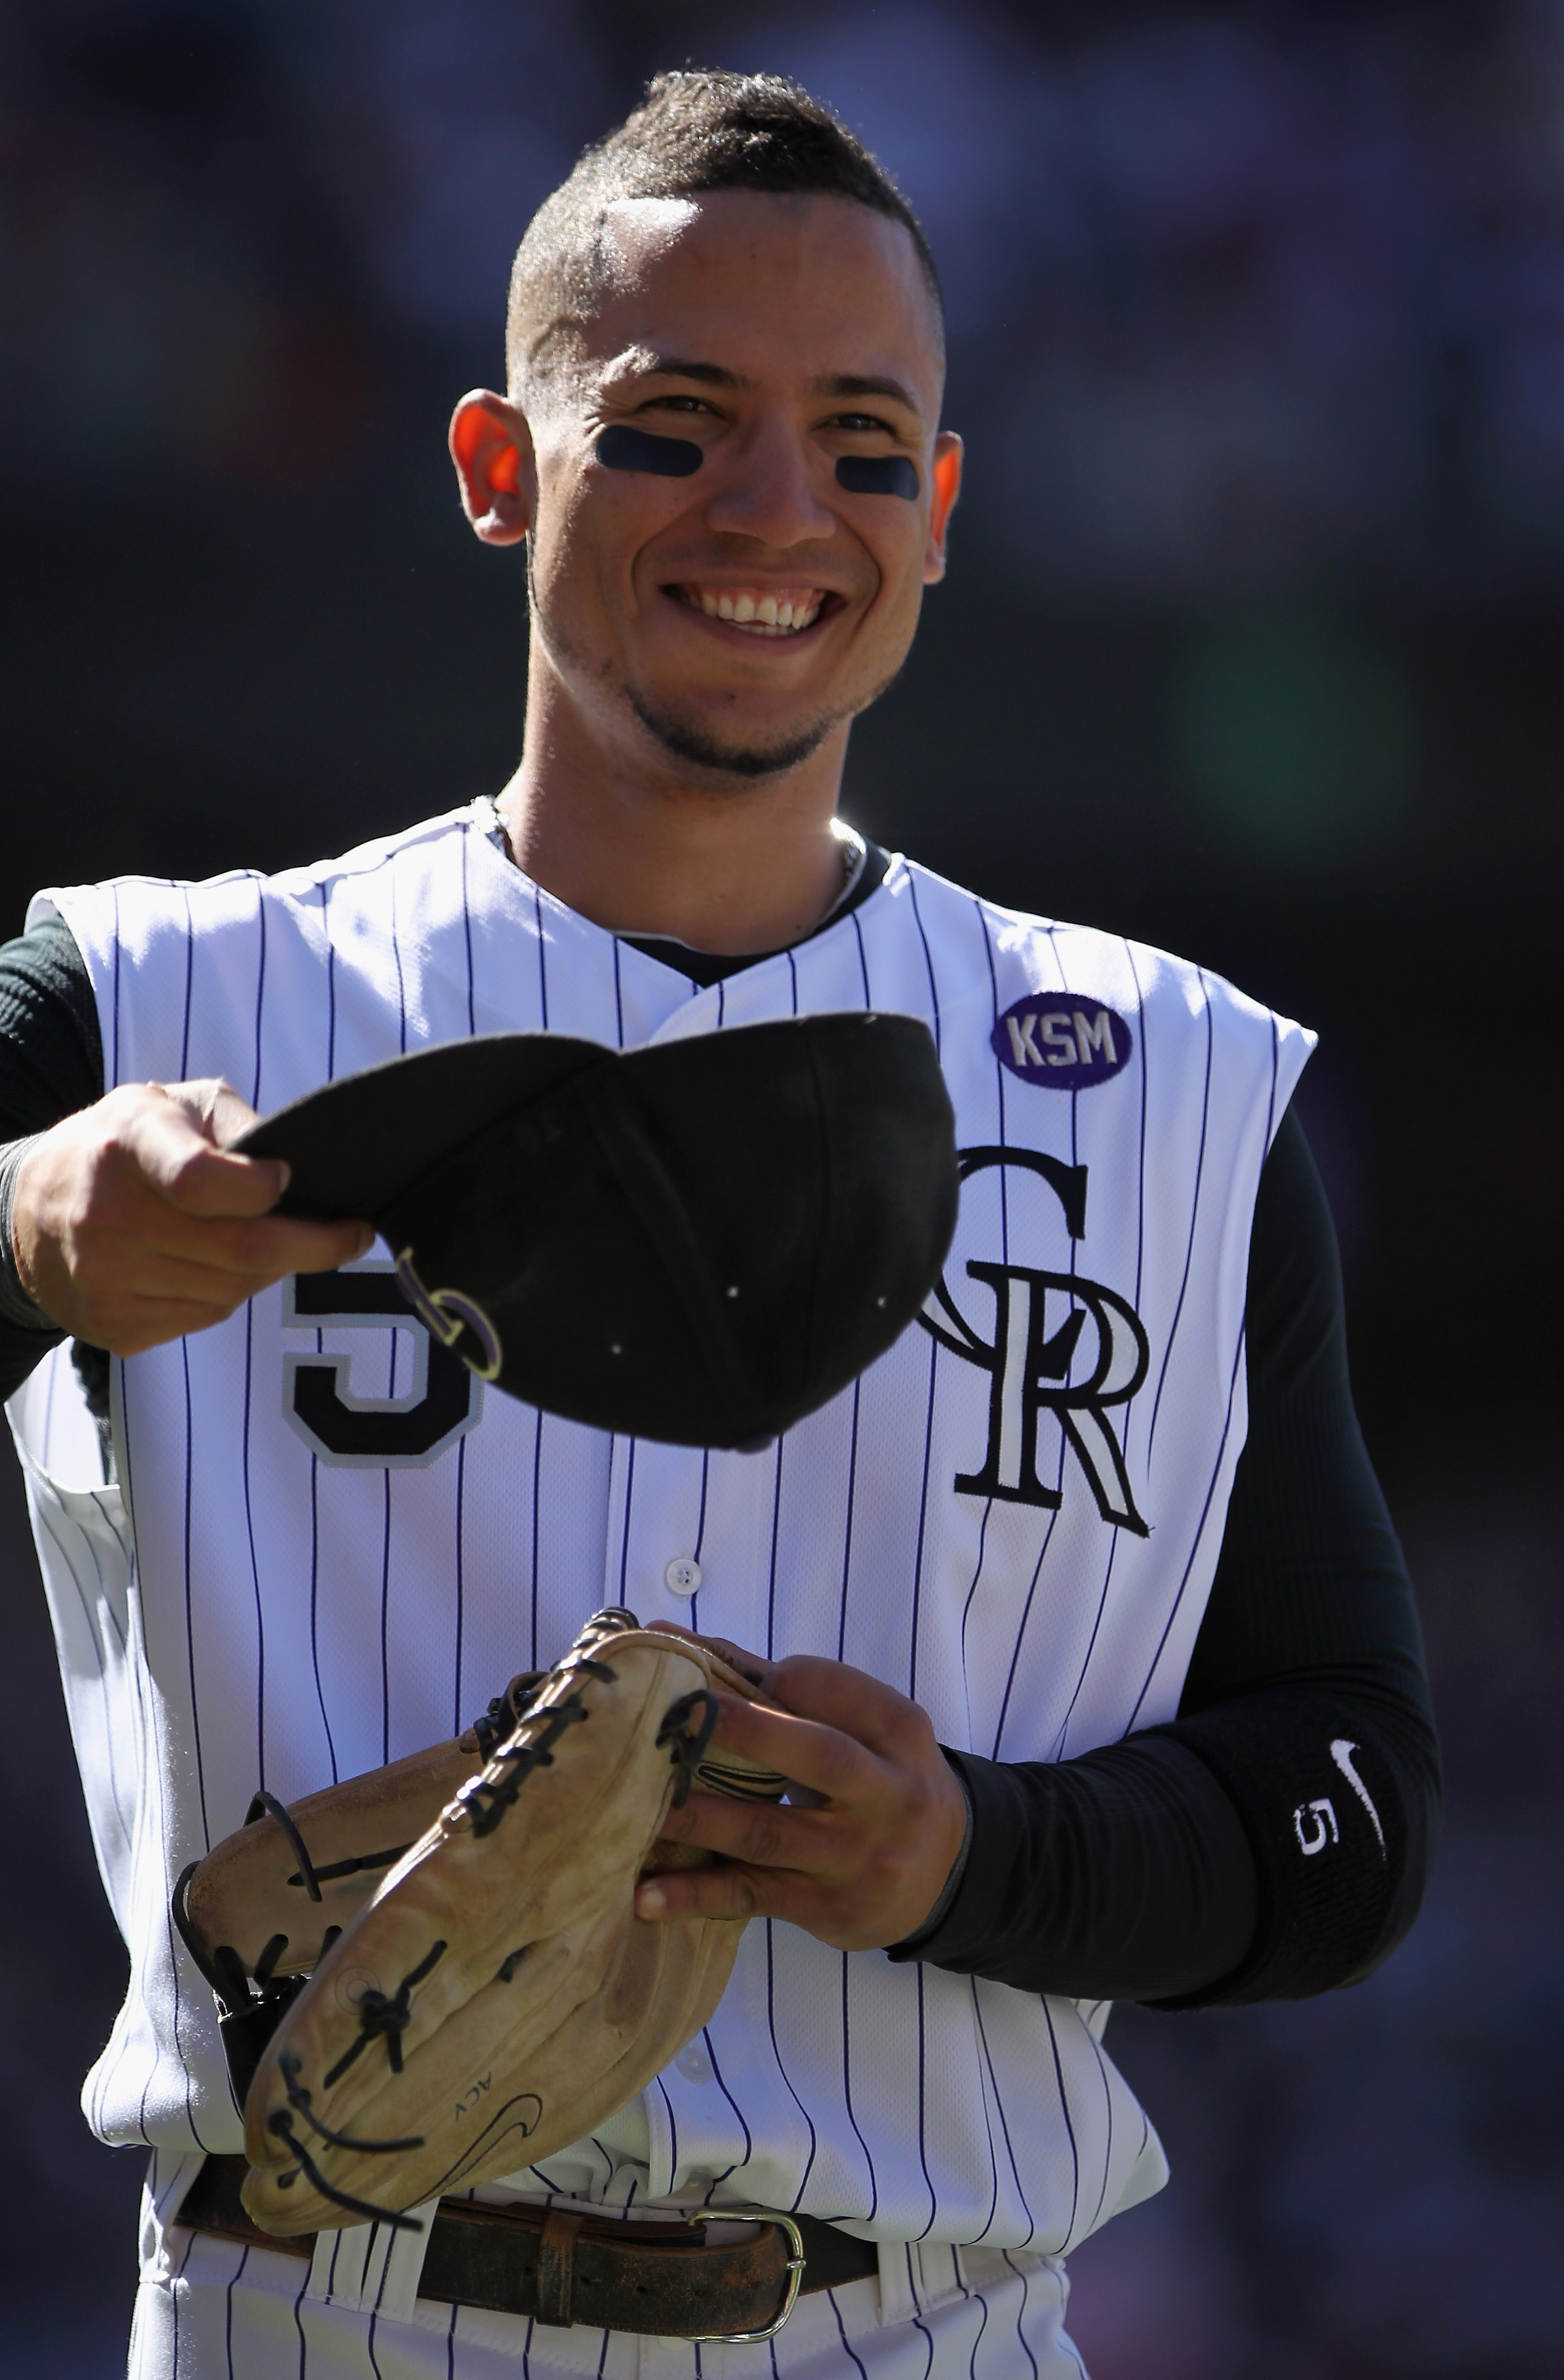 DENVER - SEPTEMBER 06:  Carlos Gonzalez #5 of the Colorado Rockies looks on as he takes the field against the Cincinnati Reds at Coors Field on September 6, 2010 in Denver, Colorado. Gonzalez went 3 for 5 and increased his average to .340 as the Rockies d